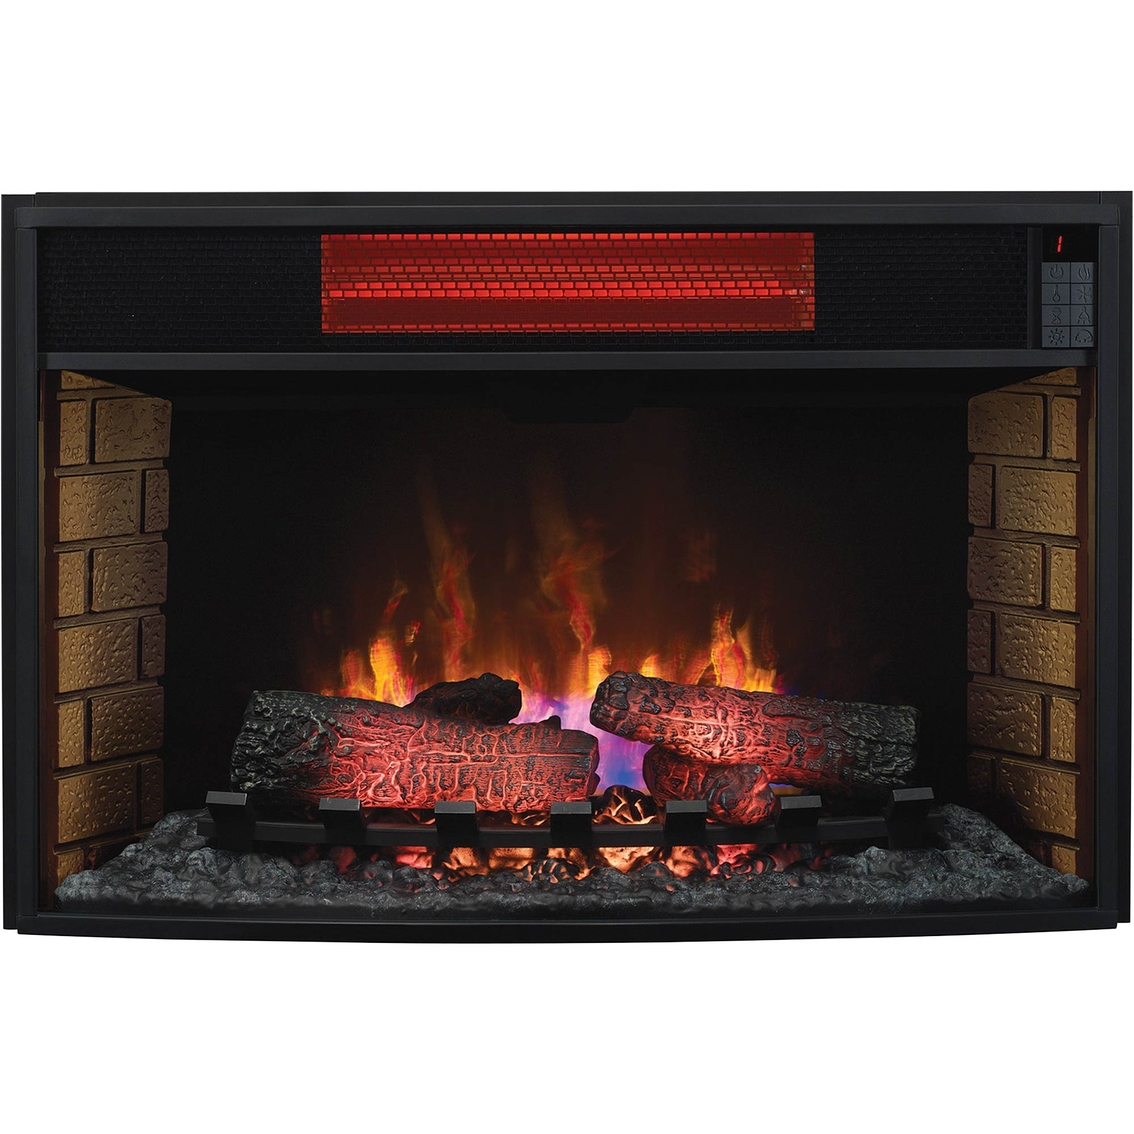 Twinstar Classicflame Electric 33 In Fireplace Insert